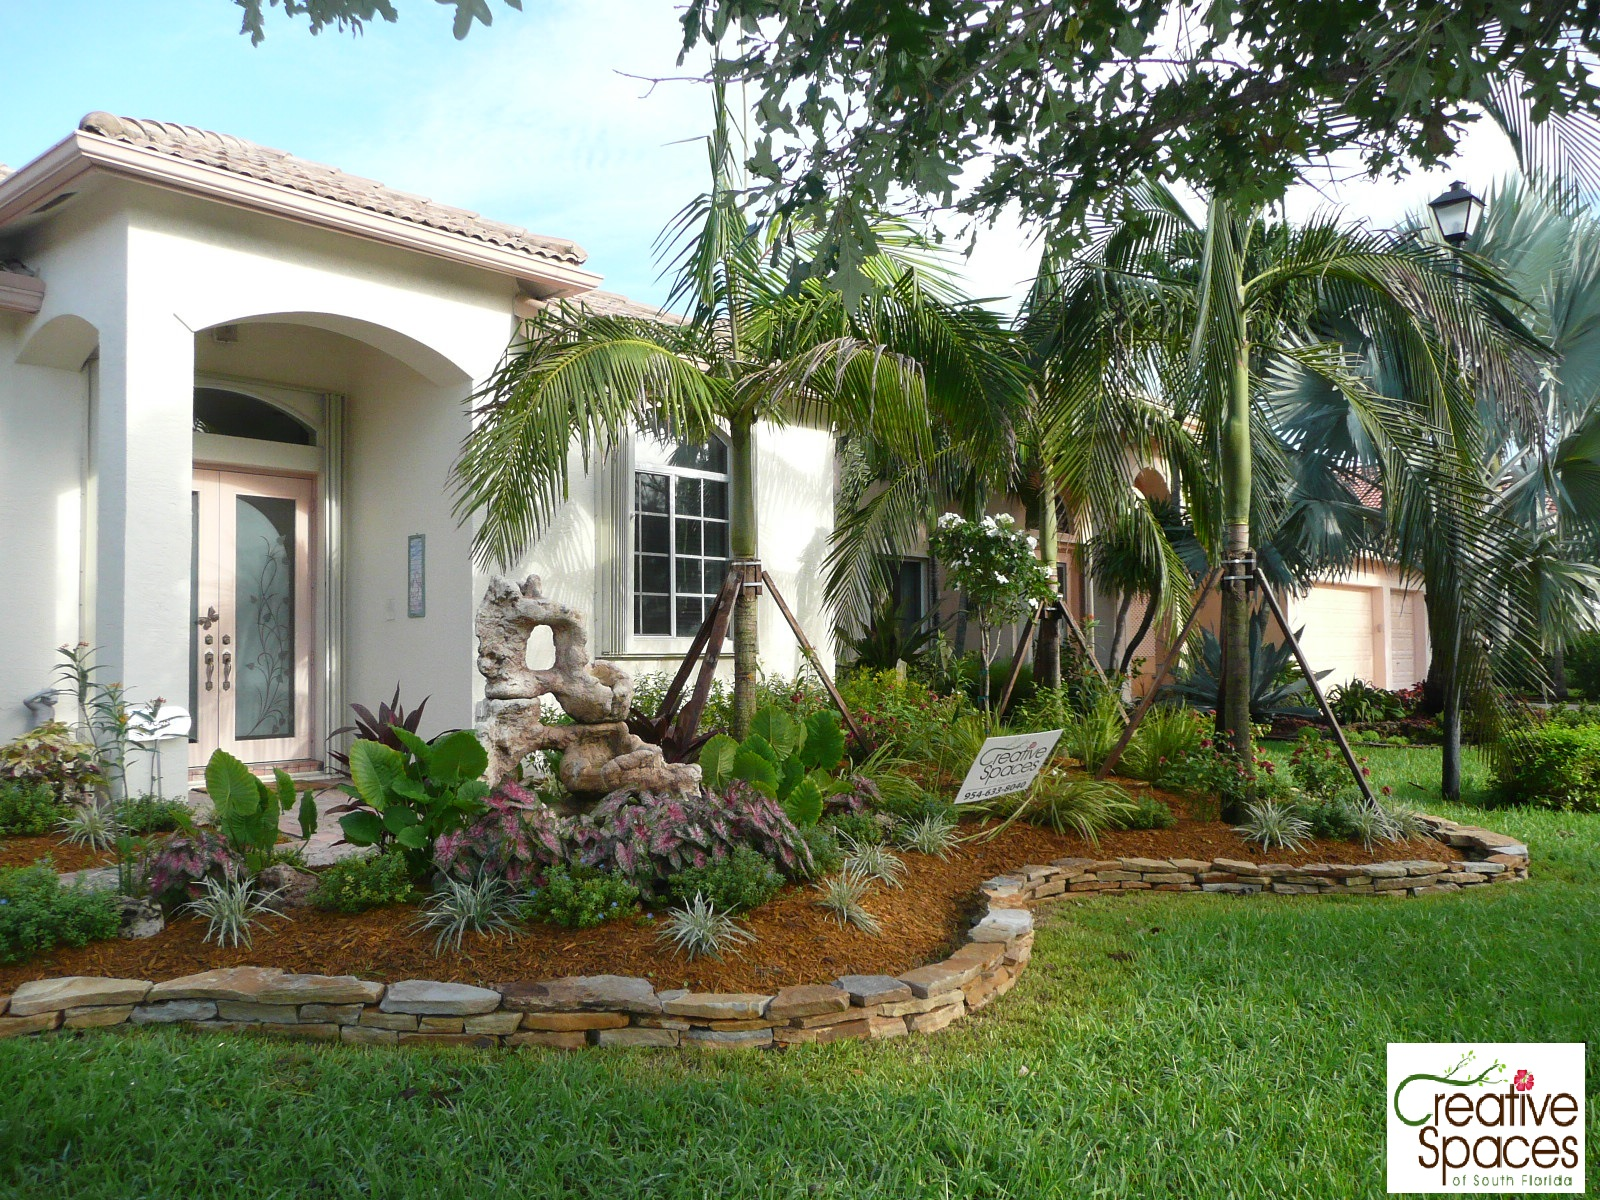 Landscaping Landscaping Ideas For Front Yard In South Florida